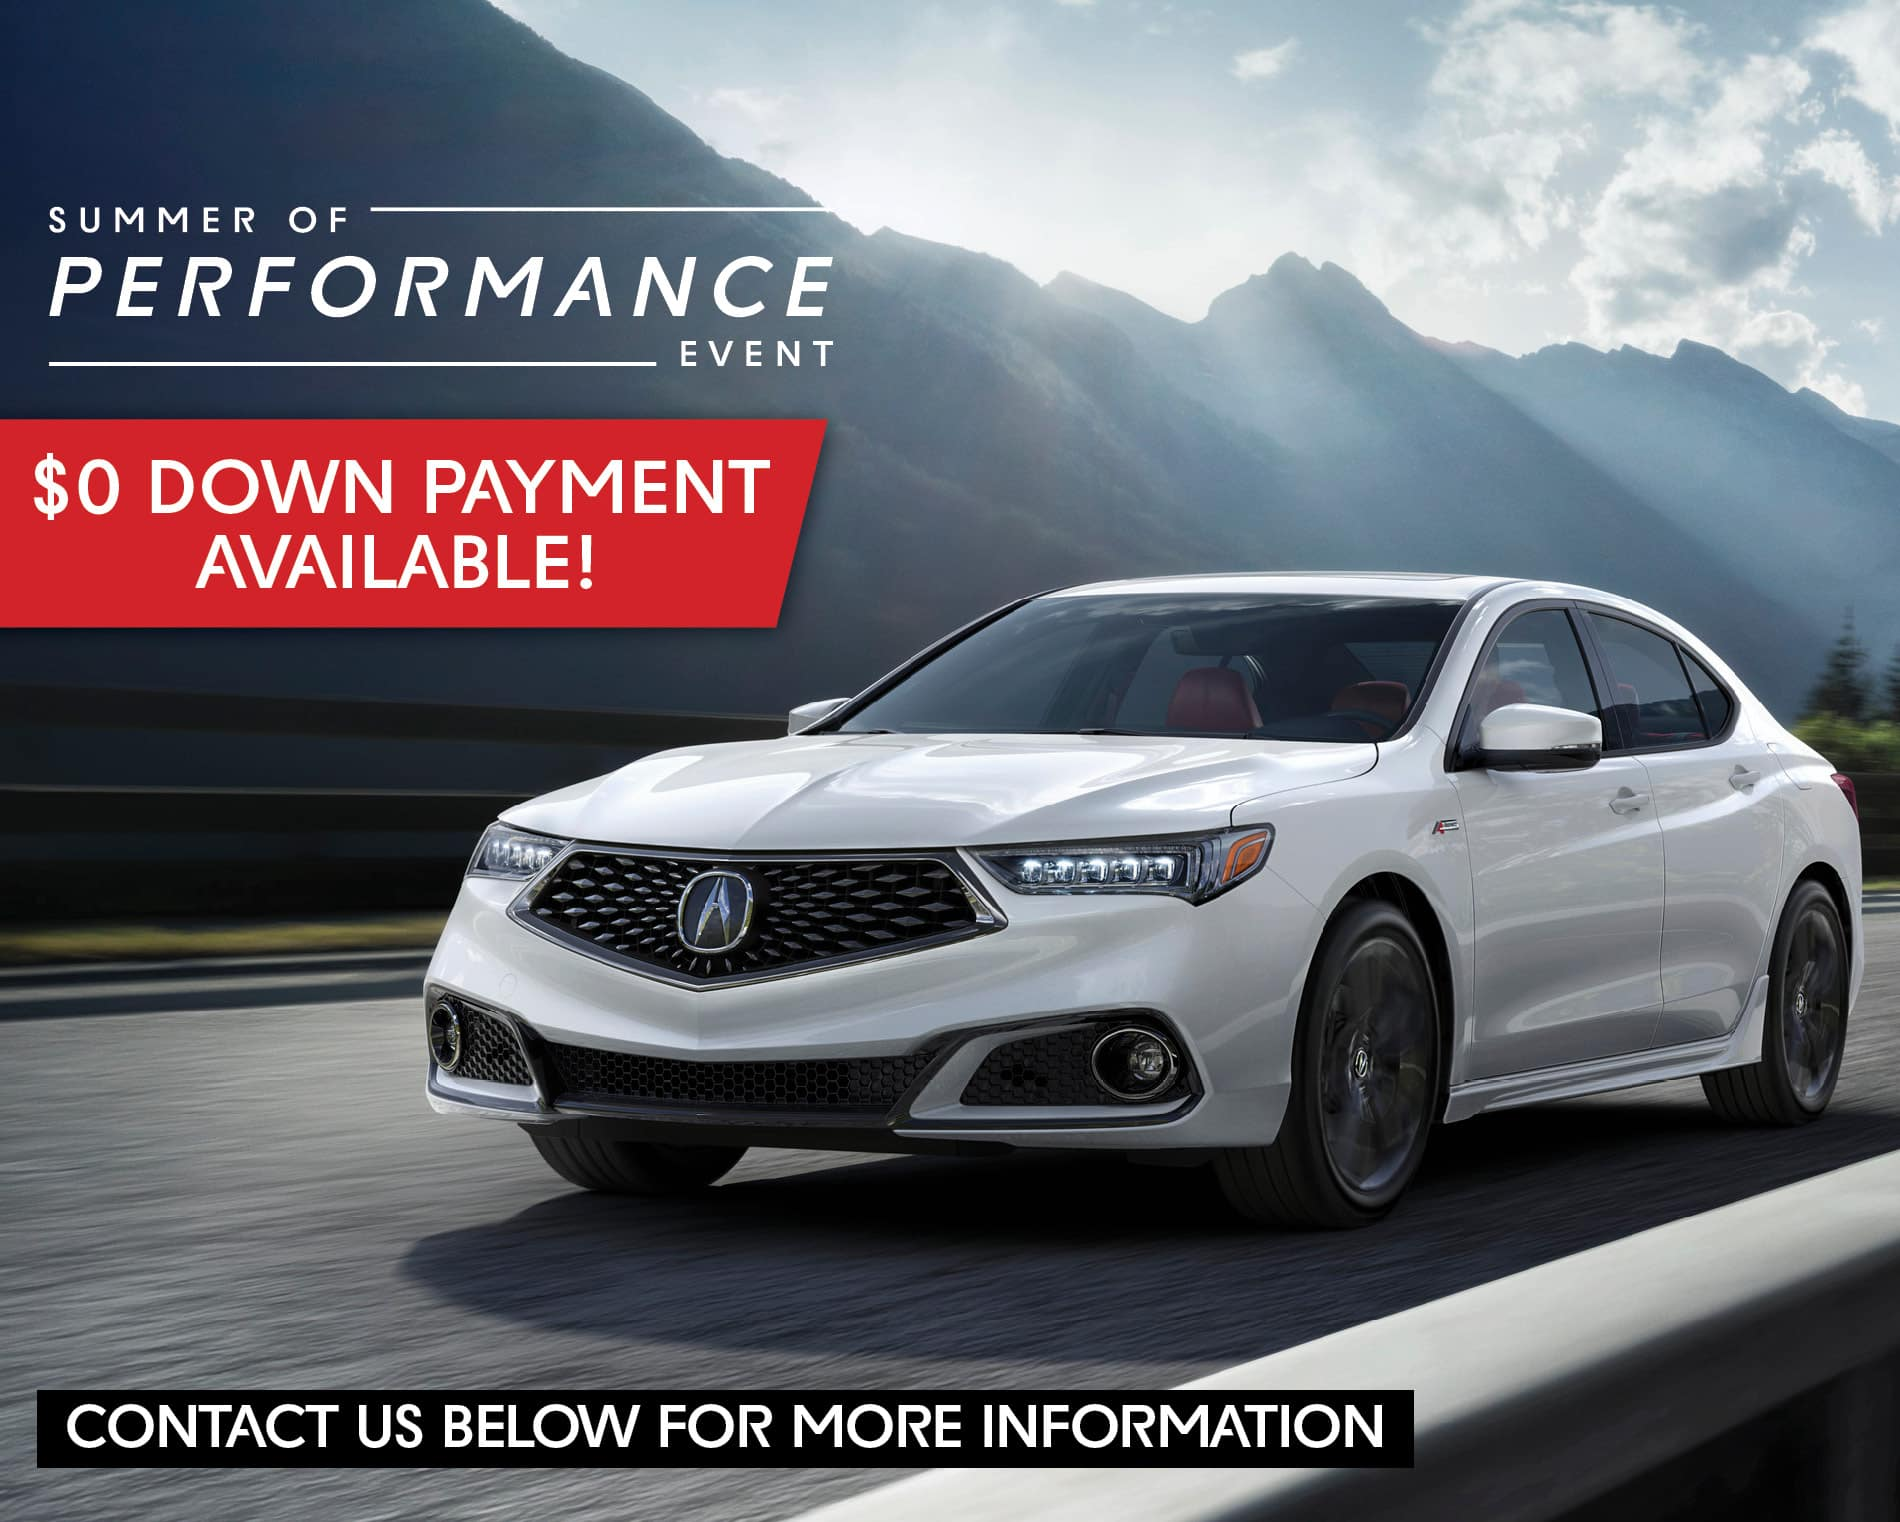 0 Down Car >> Zero Down Payment Available Rallye Acura